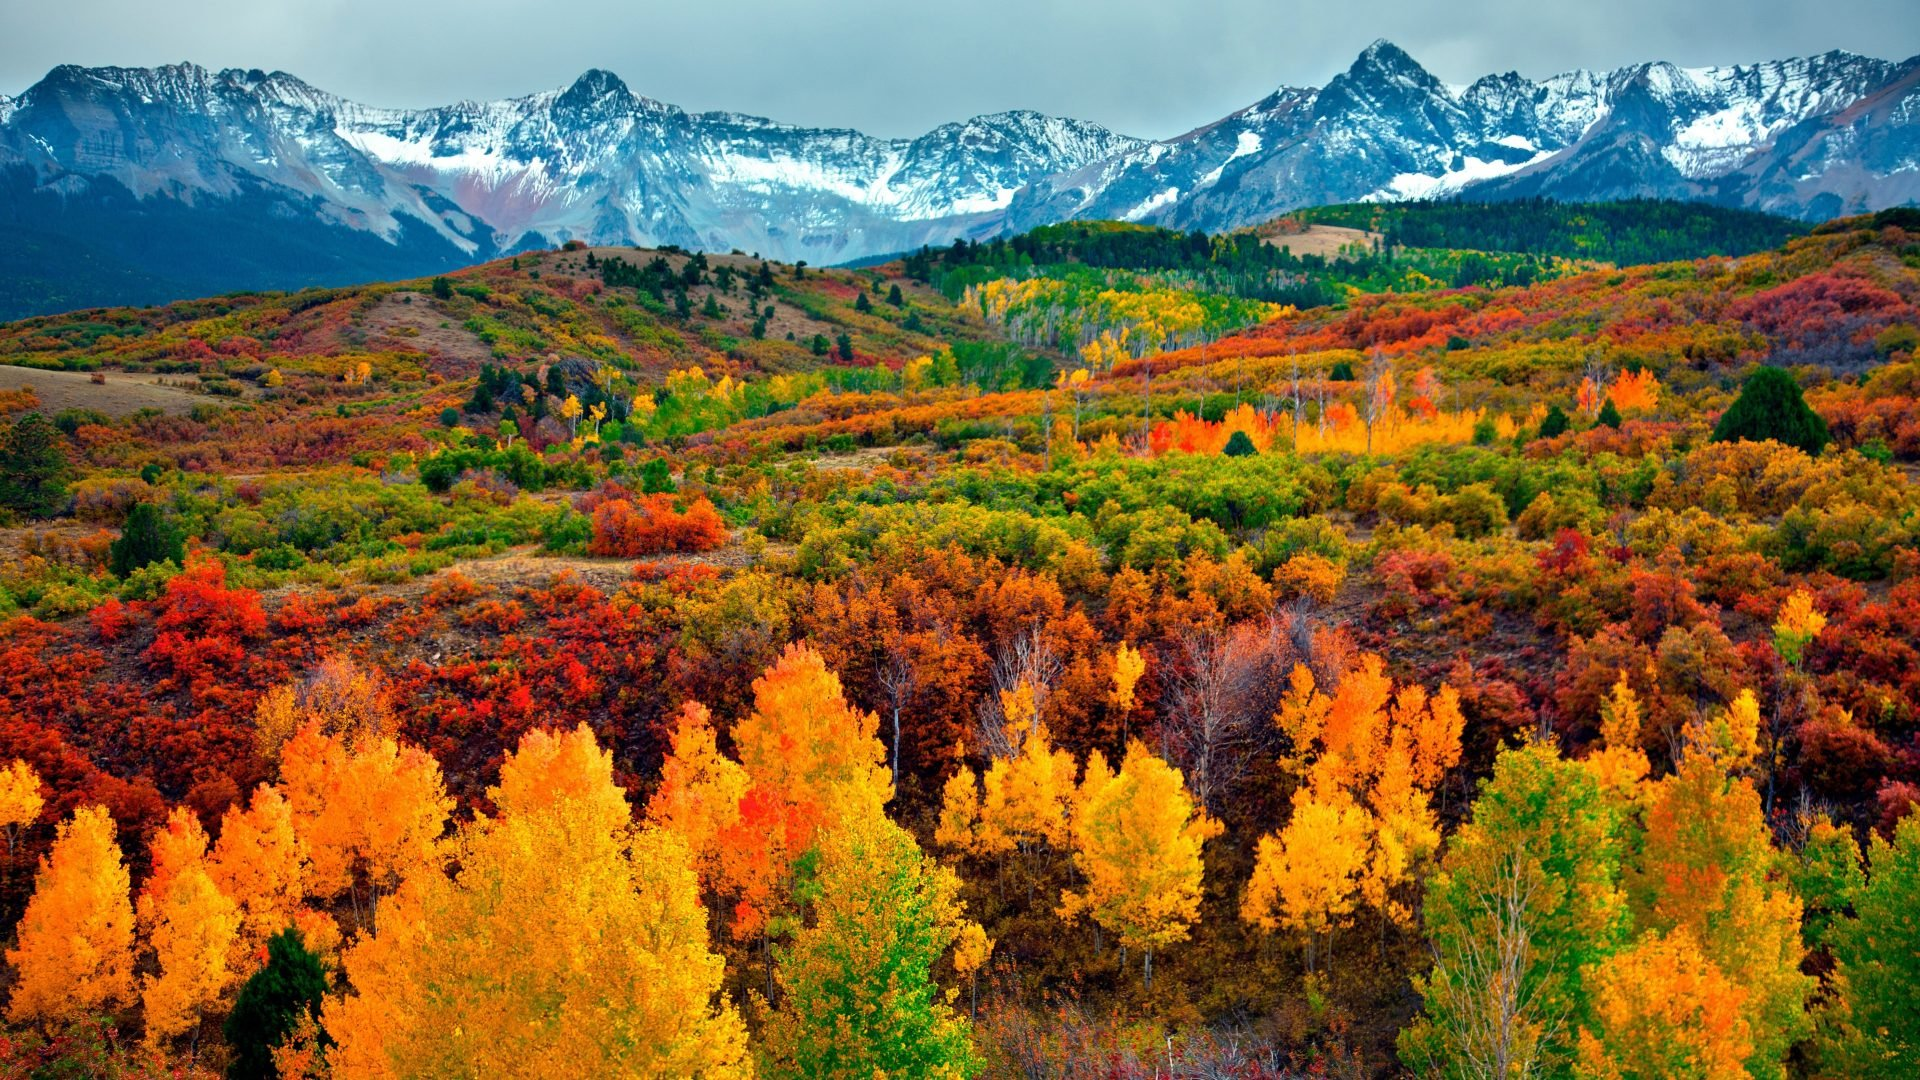 Fall Foliage Hd Wallpaper Lovely Fall Scenery Backgrounds Free Download